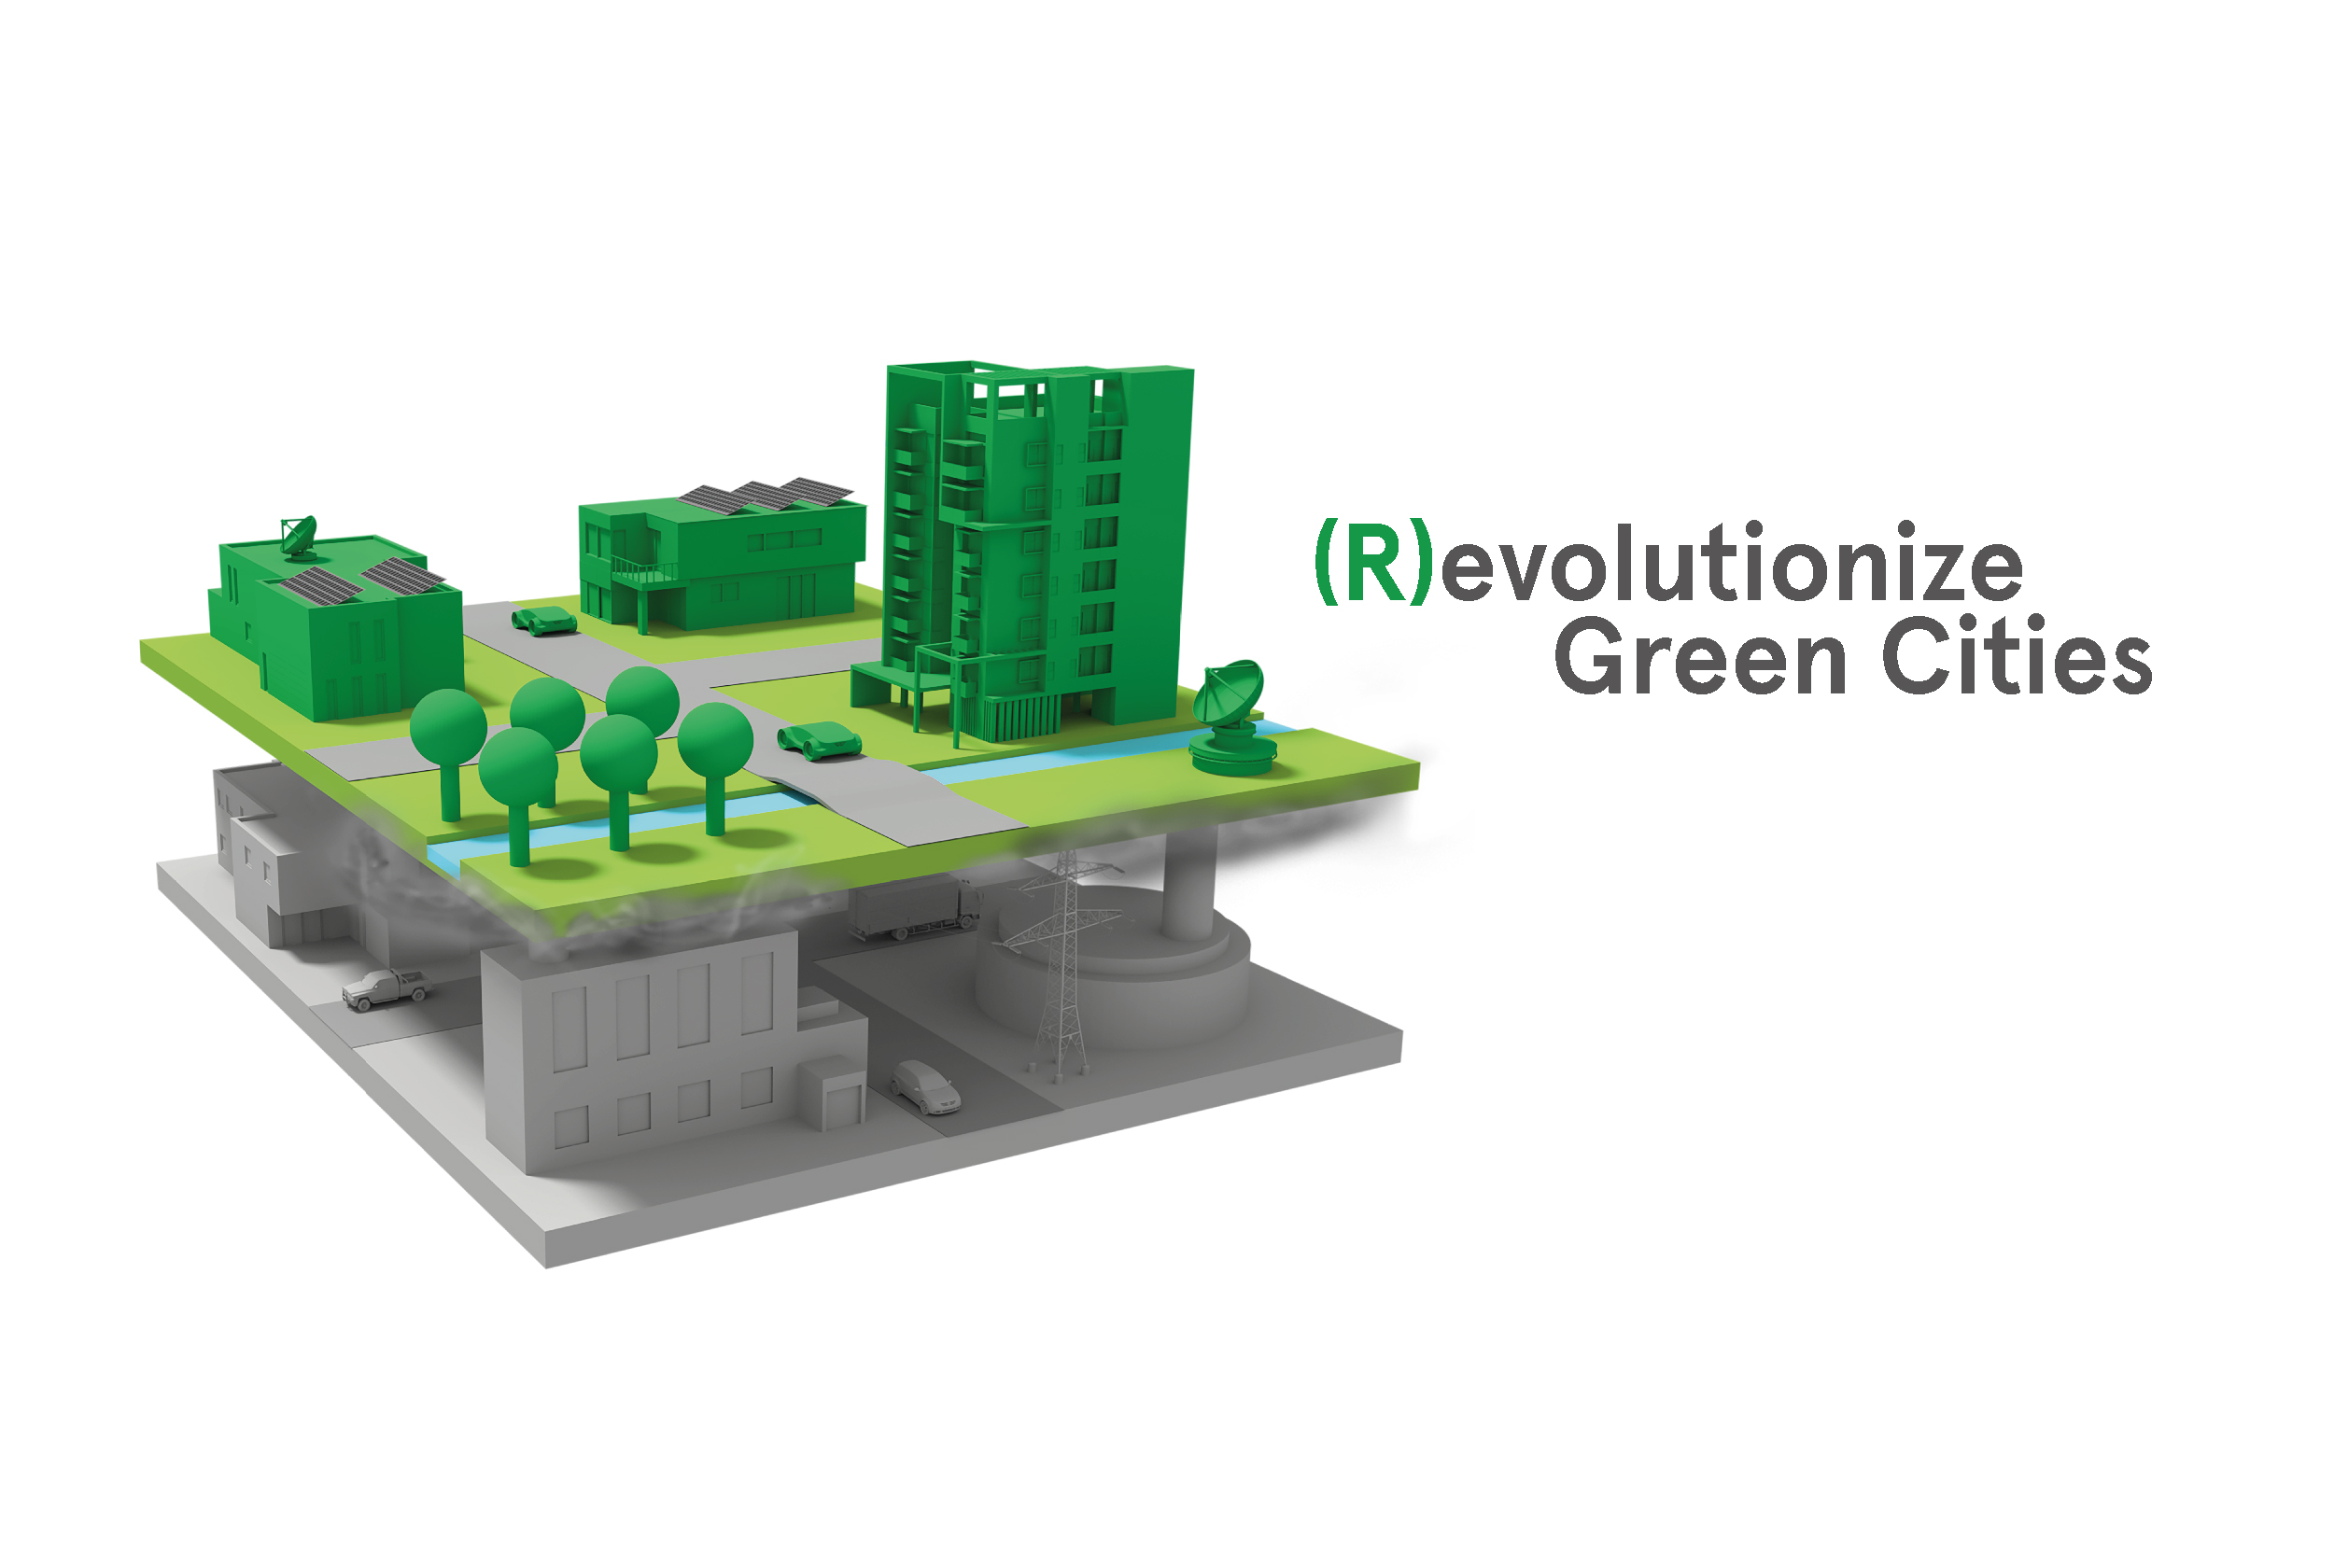 EnBW Innovation – (R)evolutionize Green Cities